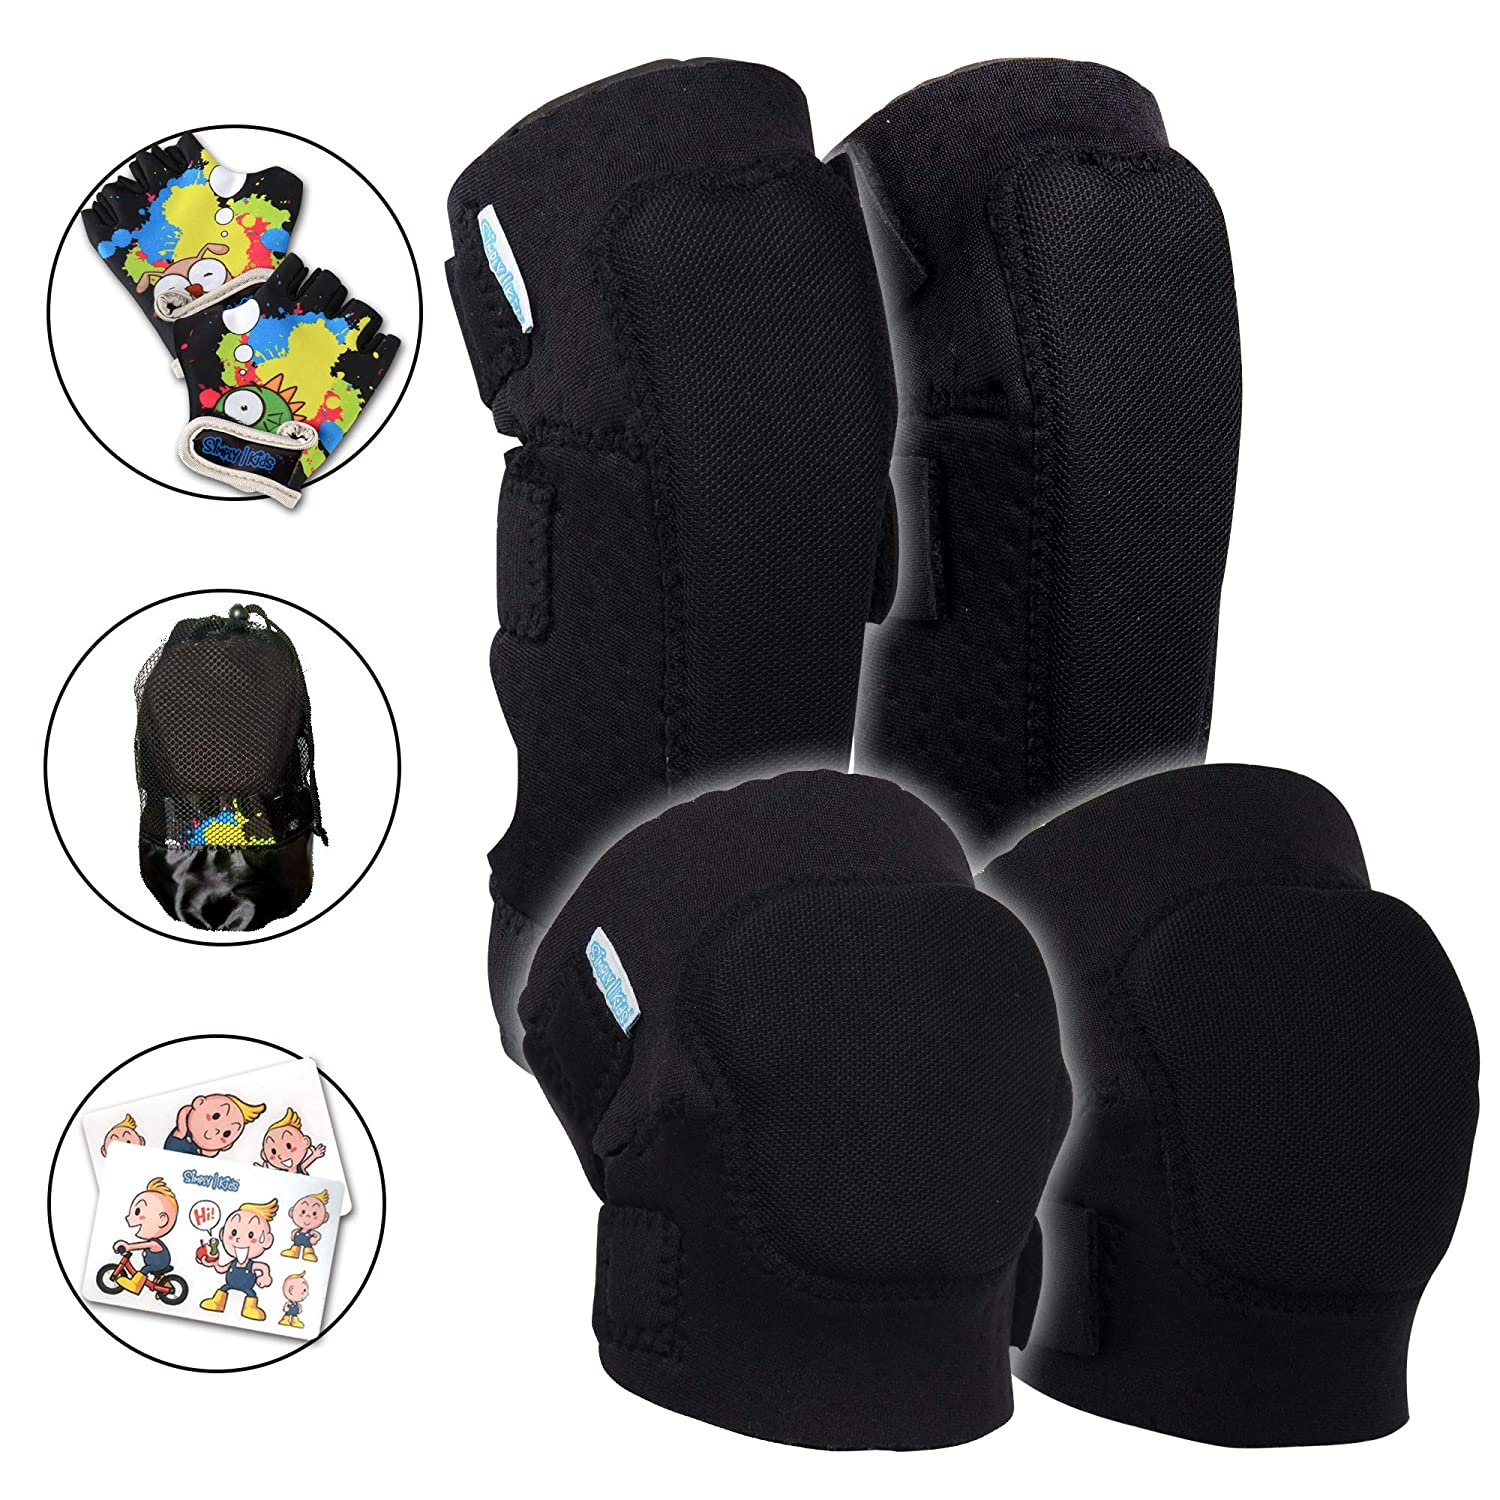 Innovative Soft Kids Knee and Elbow Pads with Bike Gloves | Toddler Protective Gear Set w Mesh Bag Sticker | Comfortable Flexible | Roller Skating Skateboard Bike Knee Pads for Children Boys Girls